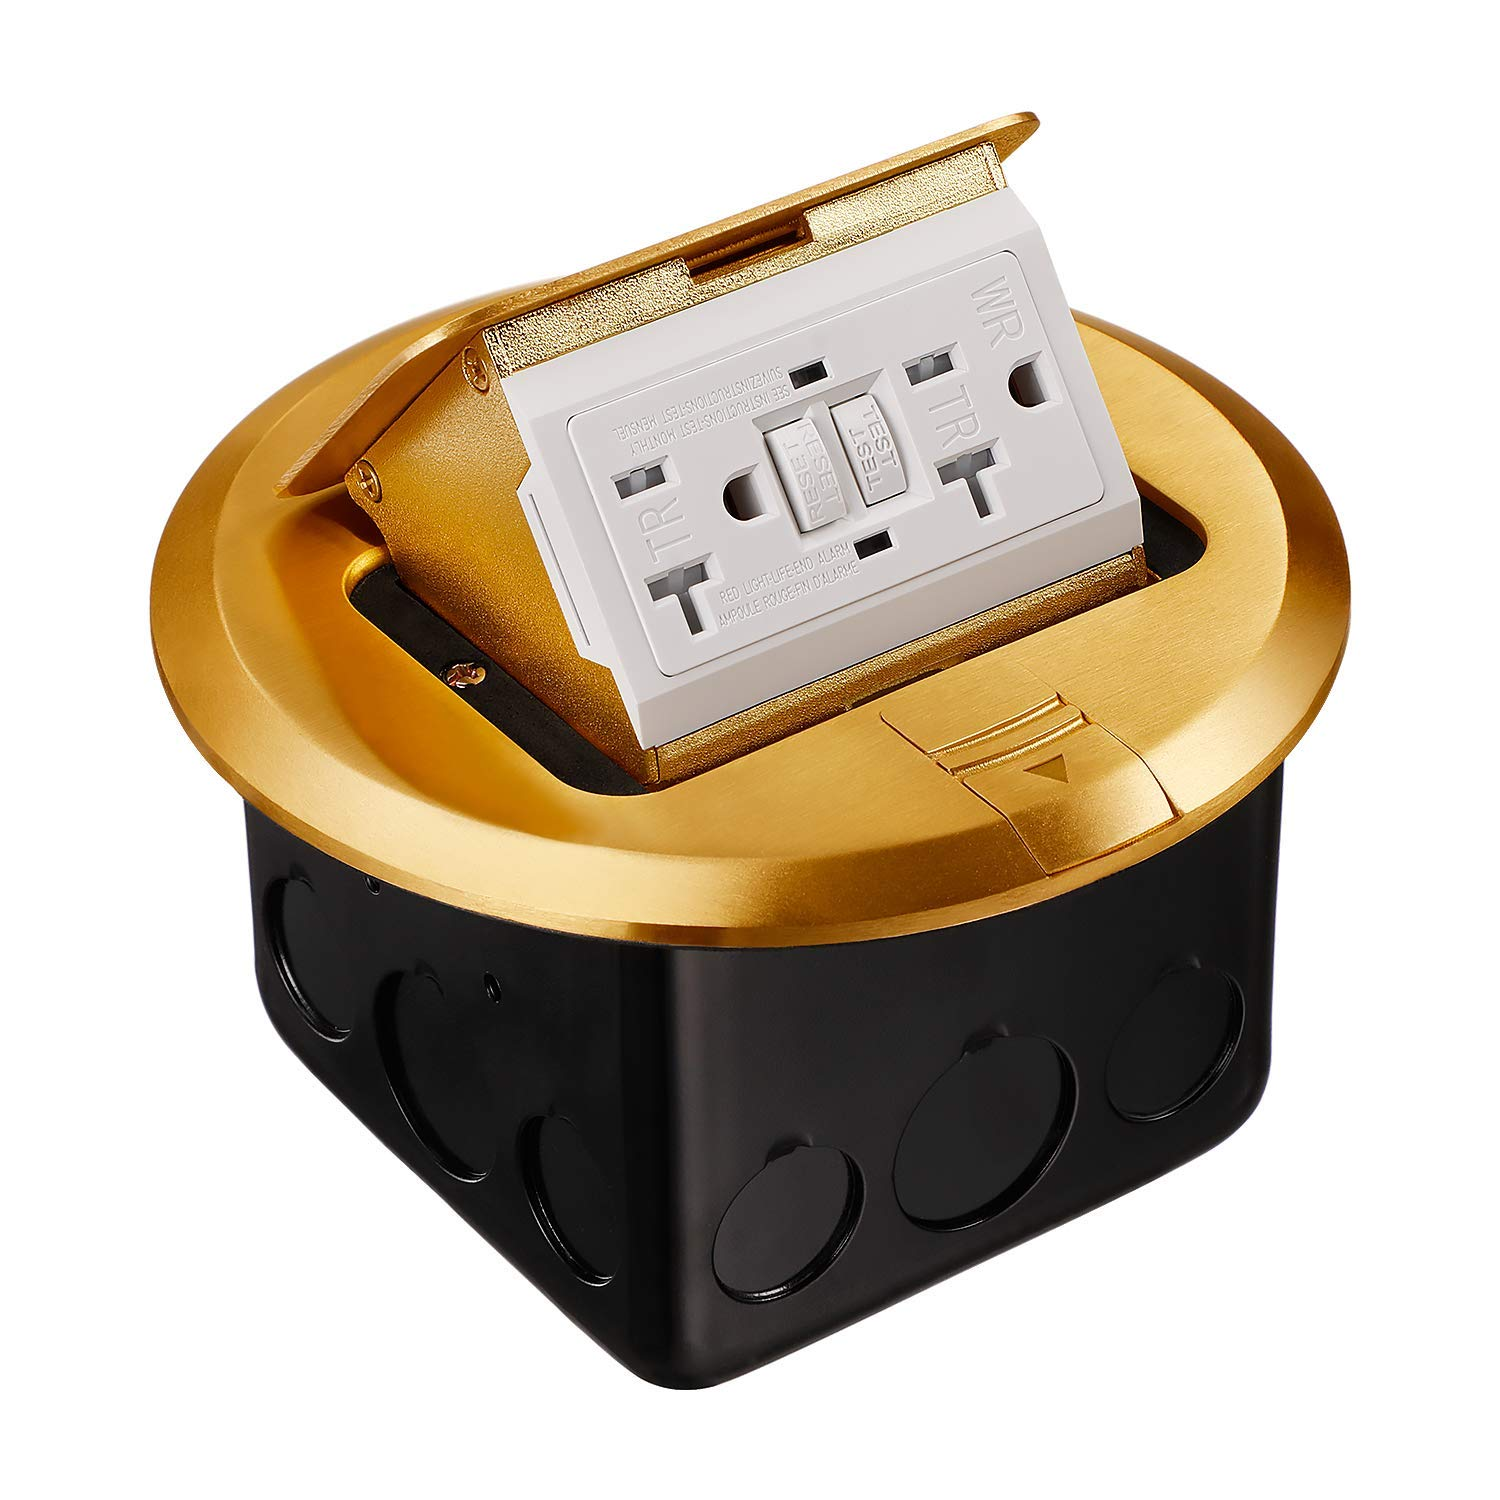 TORCHSTAR Pop-up Floor Outlet Box with Brass Cover, UL Listed Countertop Box with 20A 2AC Round GFCI Receptacle Outlet, Electrical Outlet with Junction Box, Damping Spring & Anti Electric Shock Plate